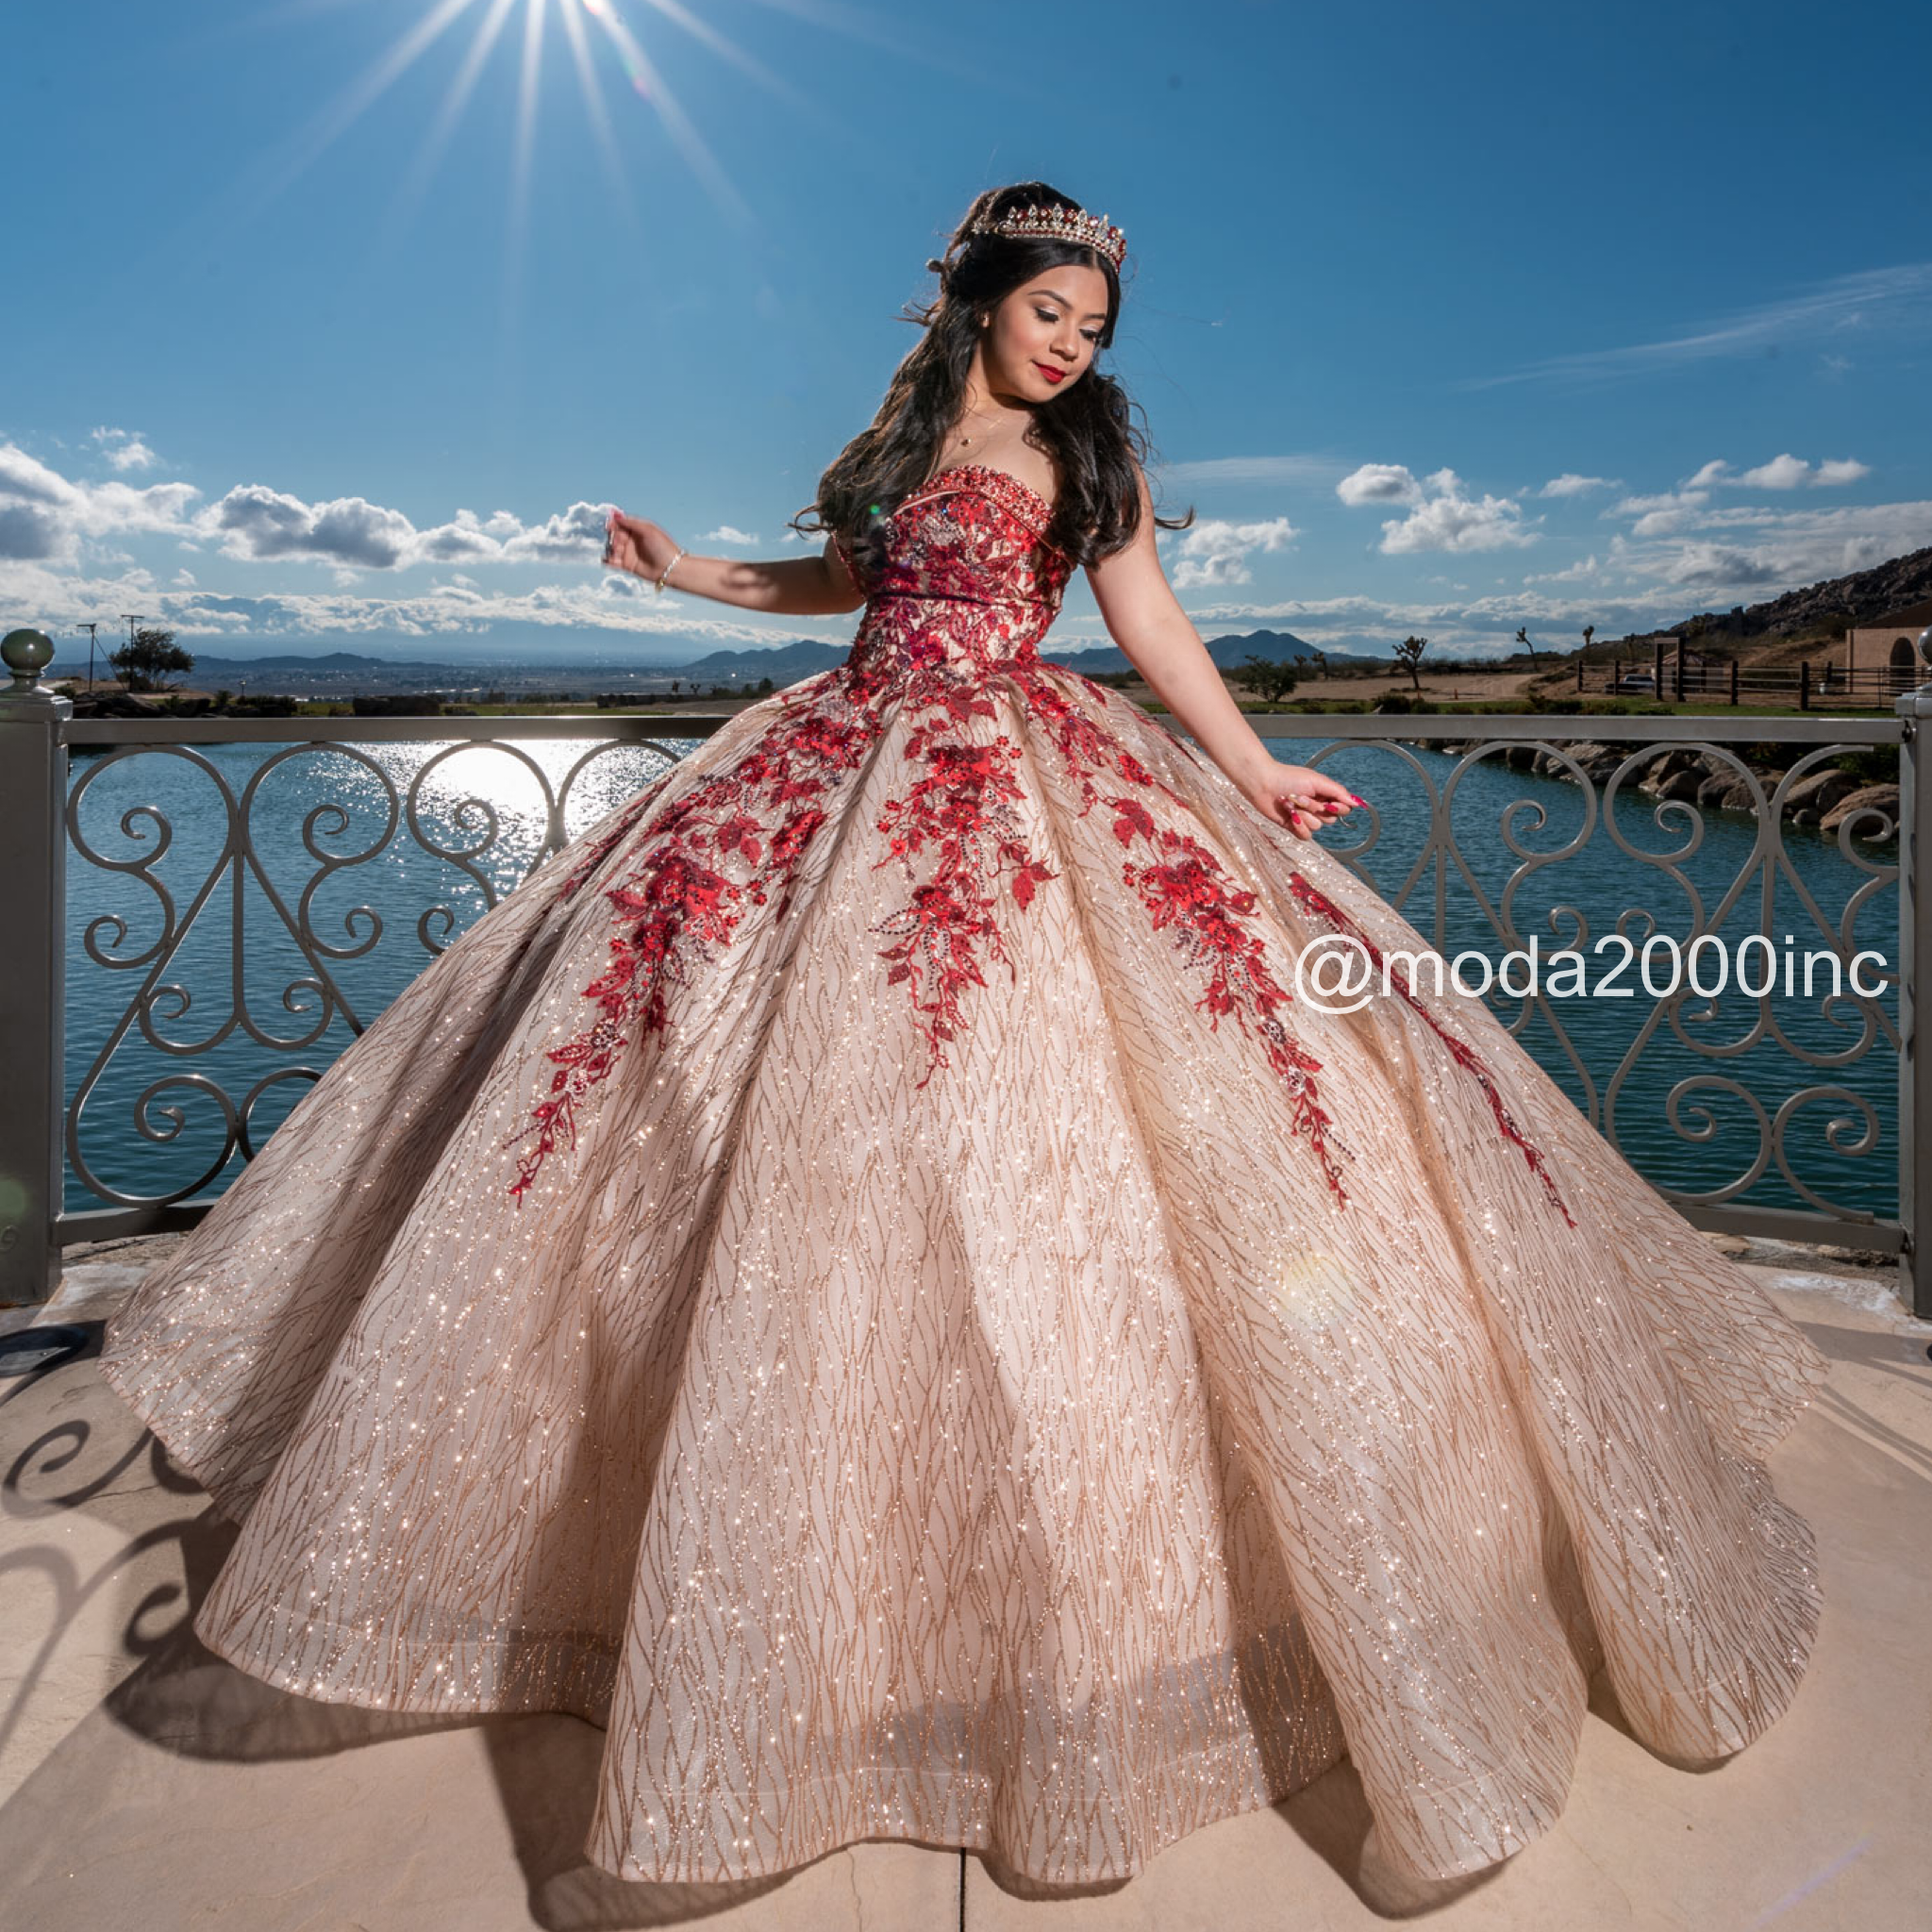 Pretty Glittery Rose Gold Dress With Red Rosses Quince Dresses Sweet 15 Dresses Quinceanera Dresses Pink [ 2048 x 2048 Pixel ]